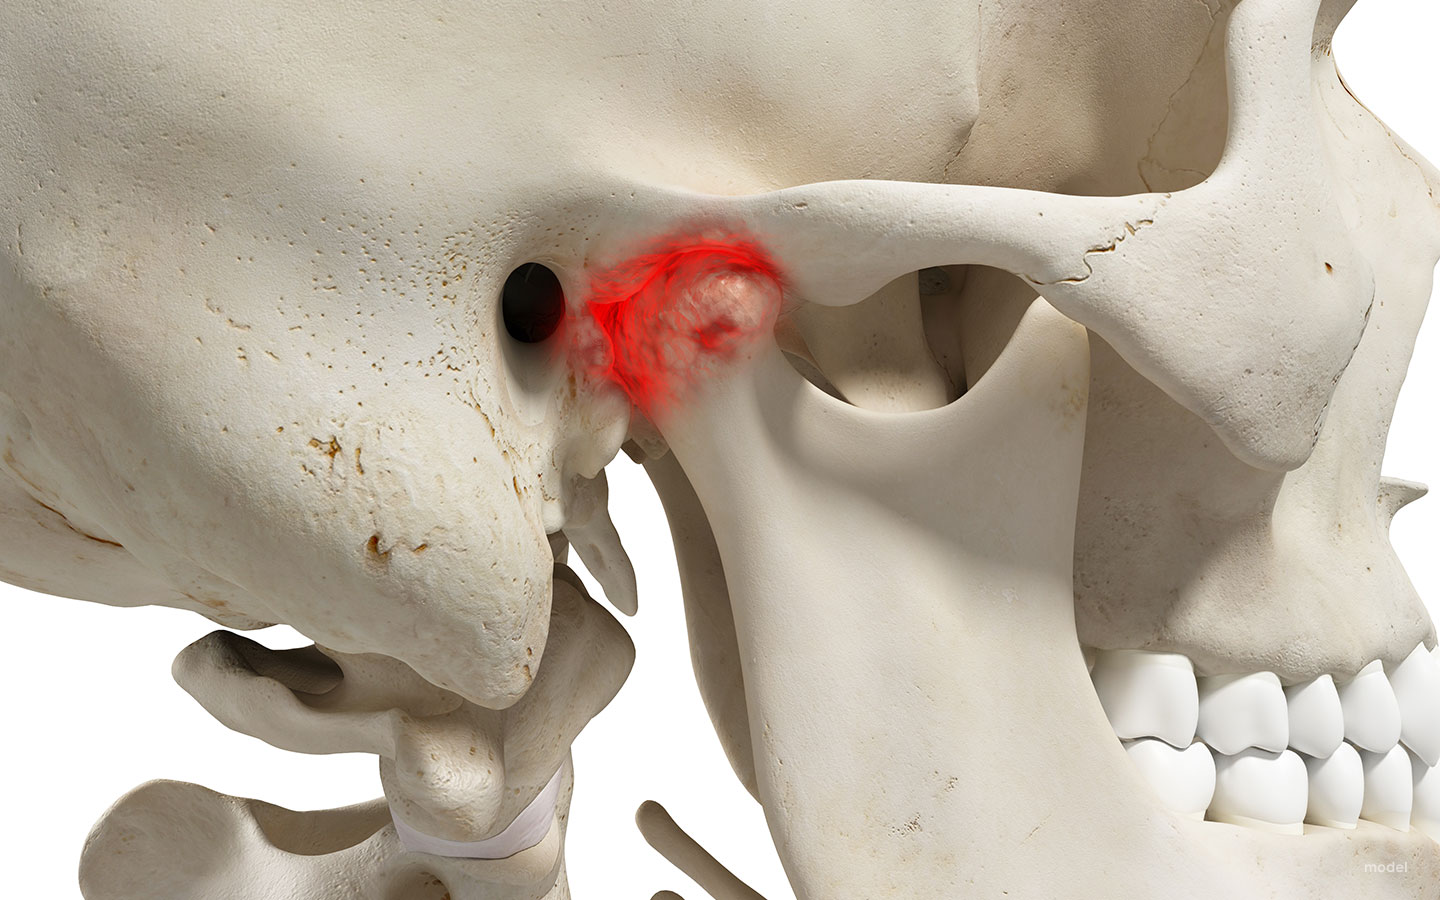 tmj surgery featured image